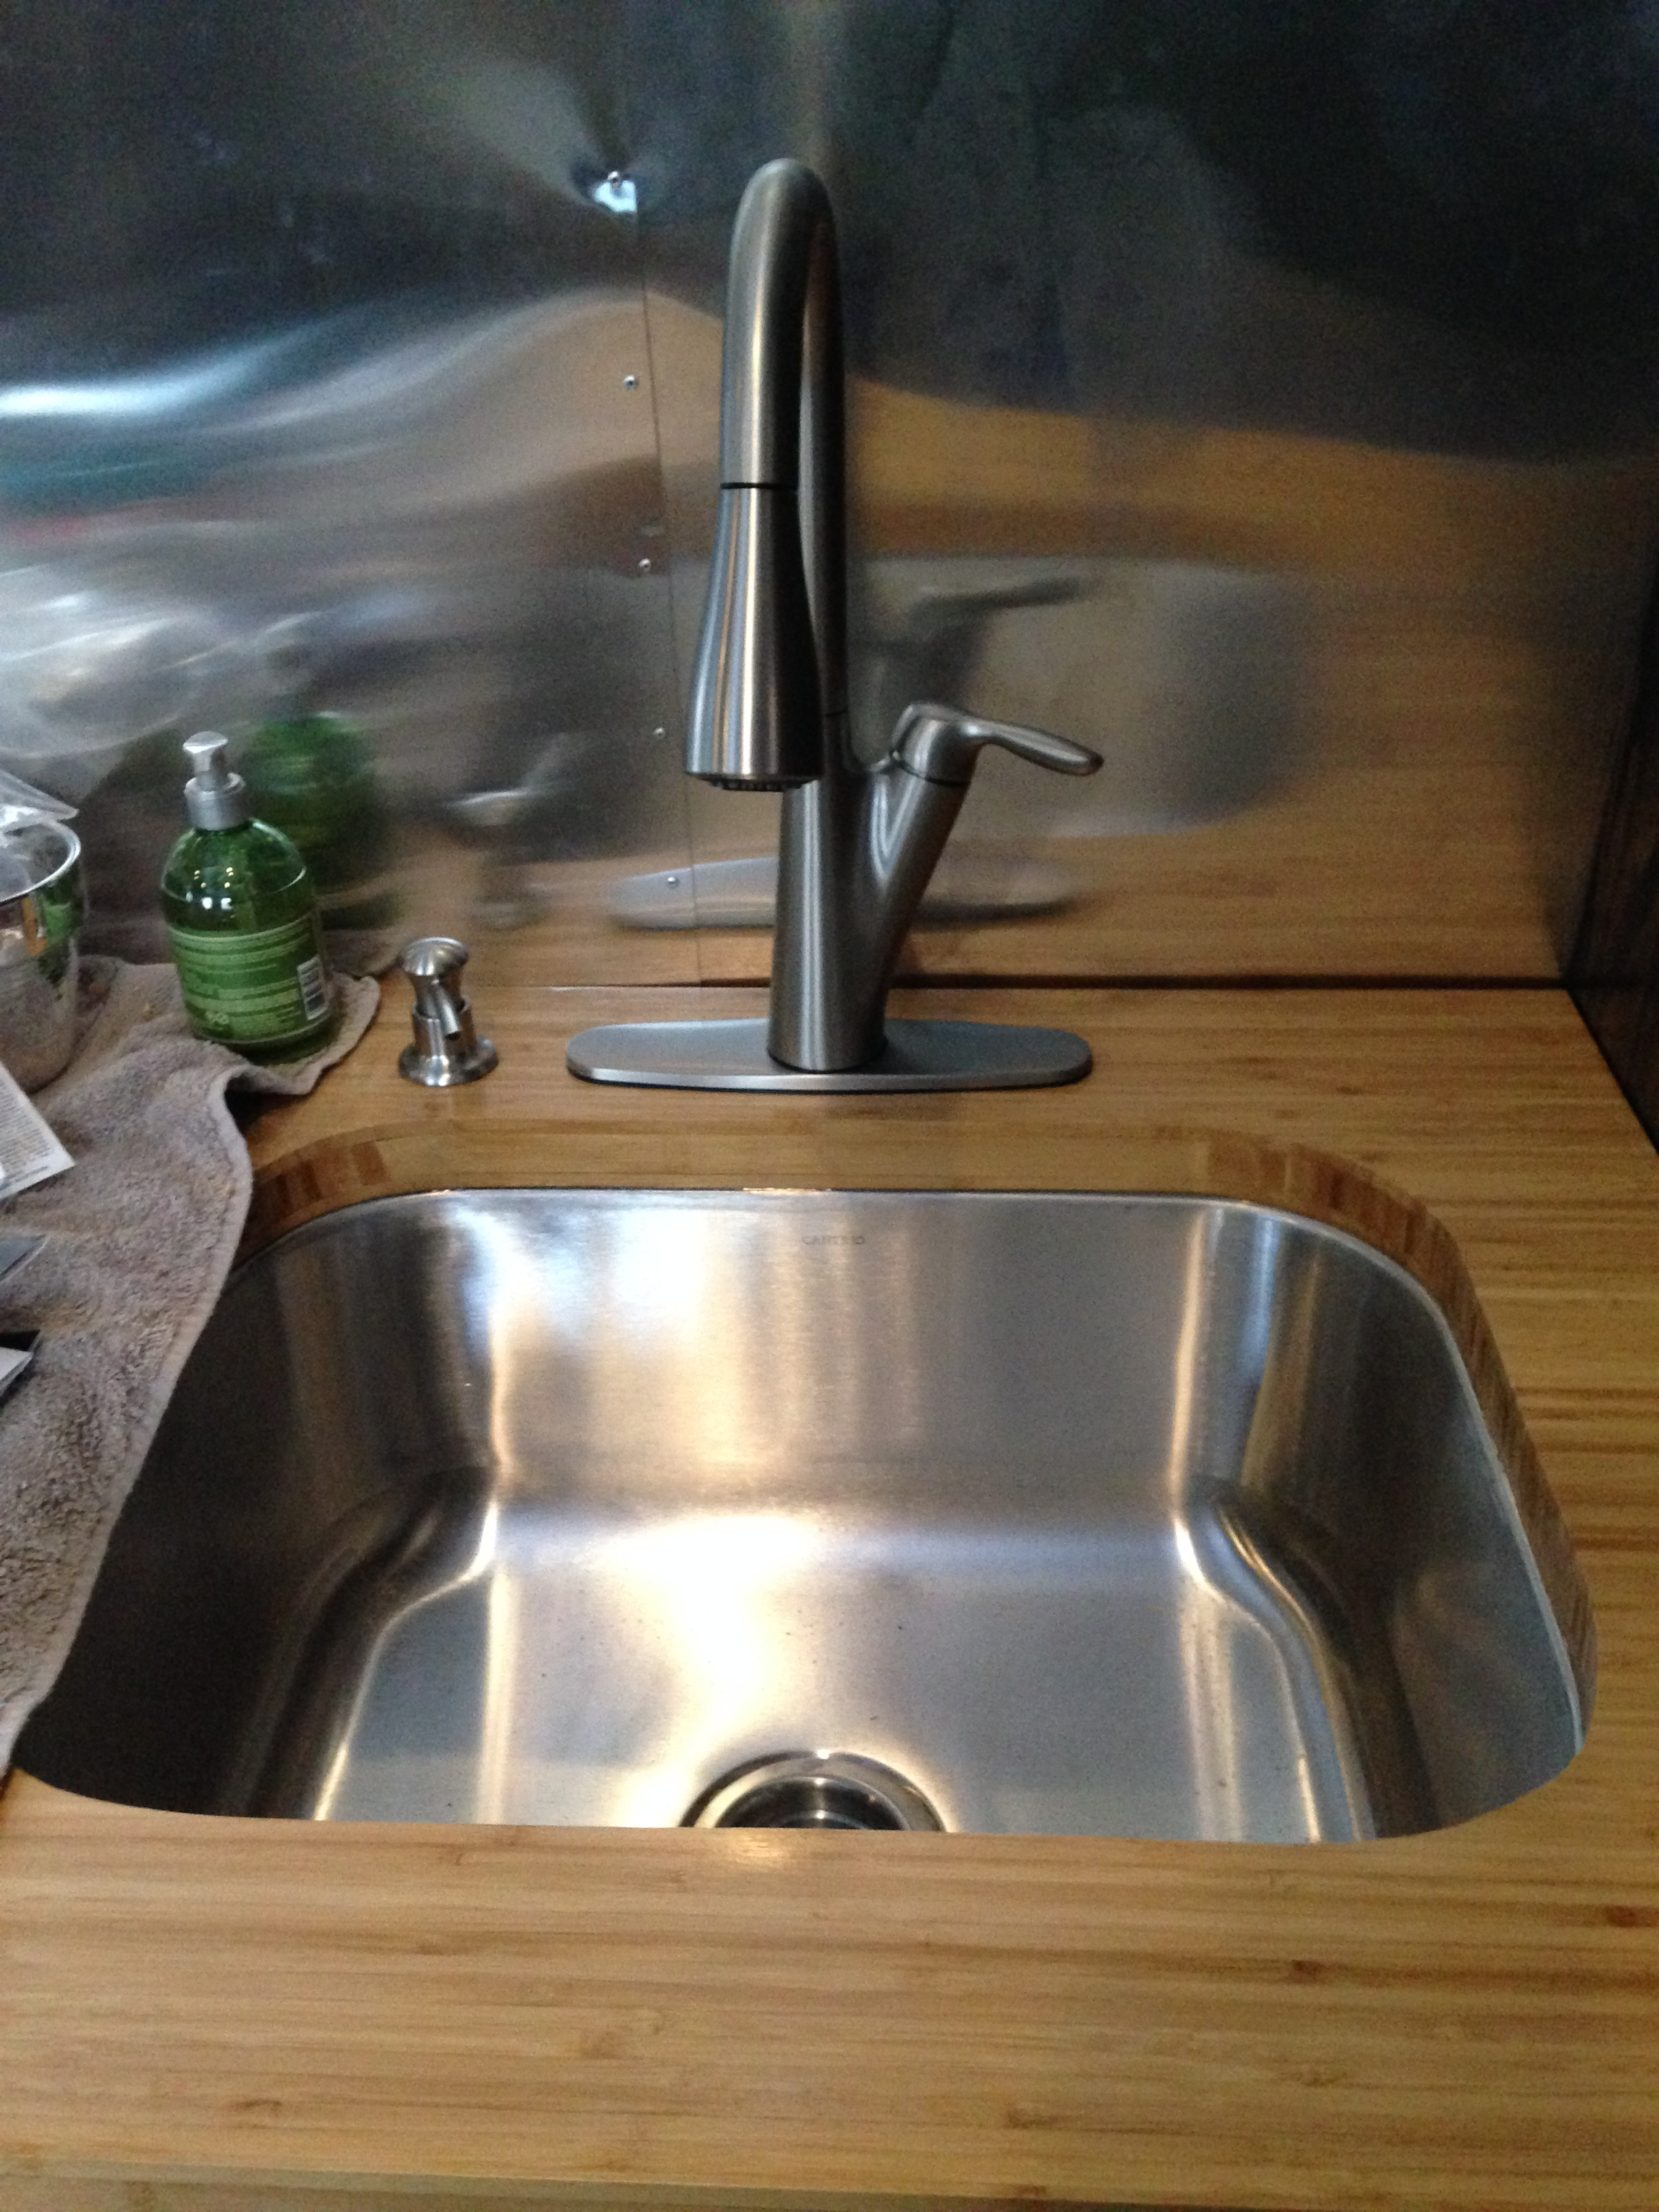 Plumbing Airstream Trailer Complete Renovation